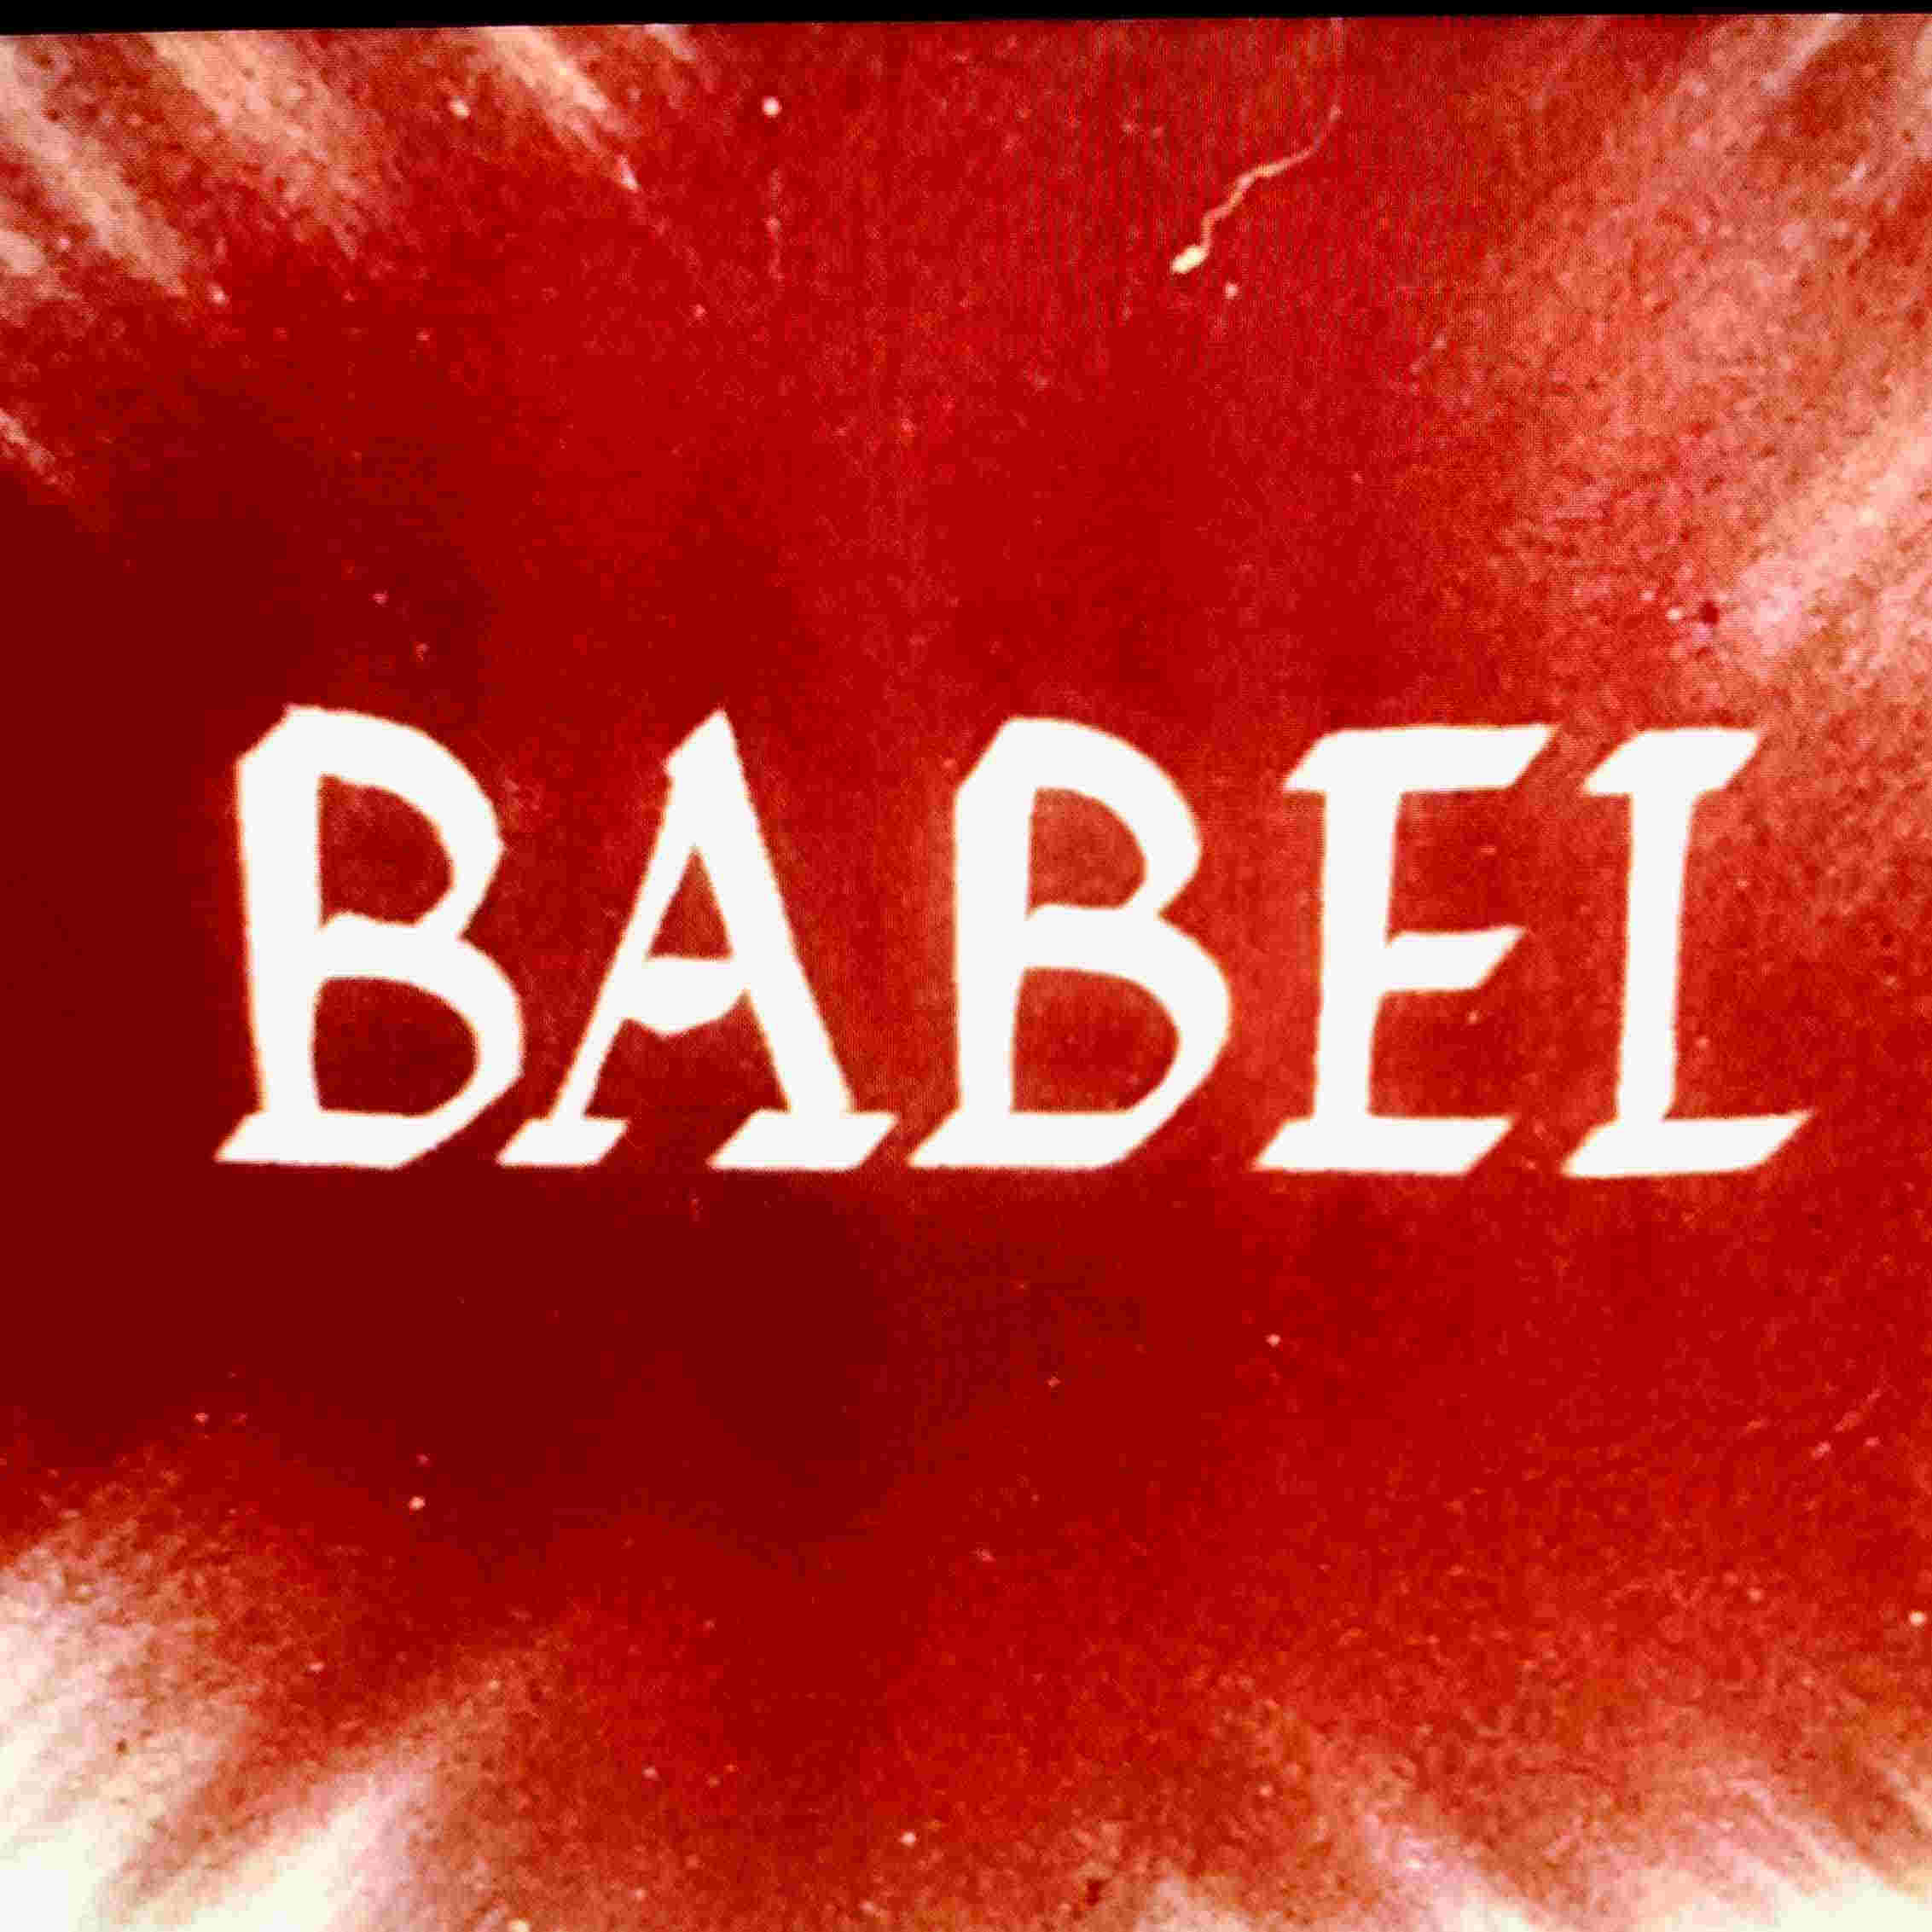 Frightening Babel nameplate from the movie